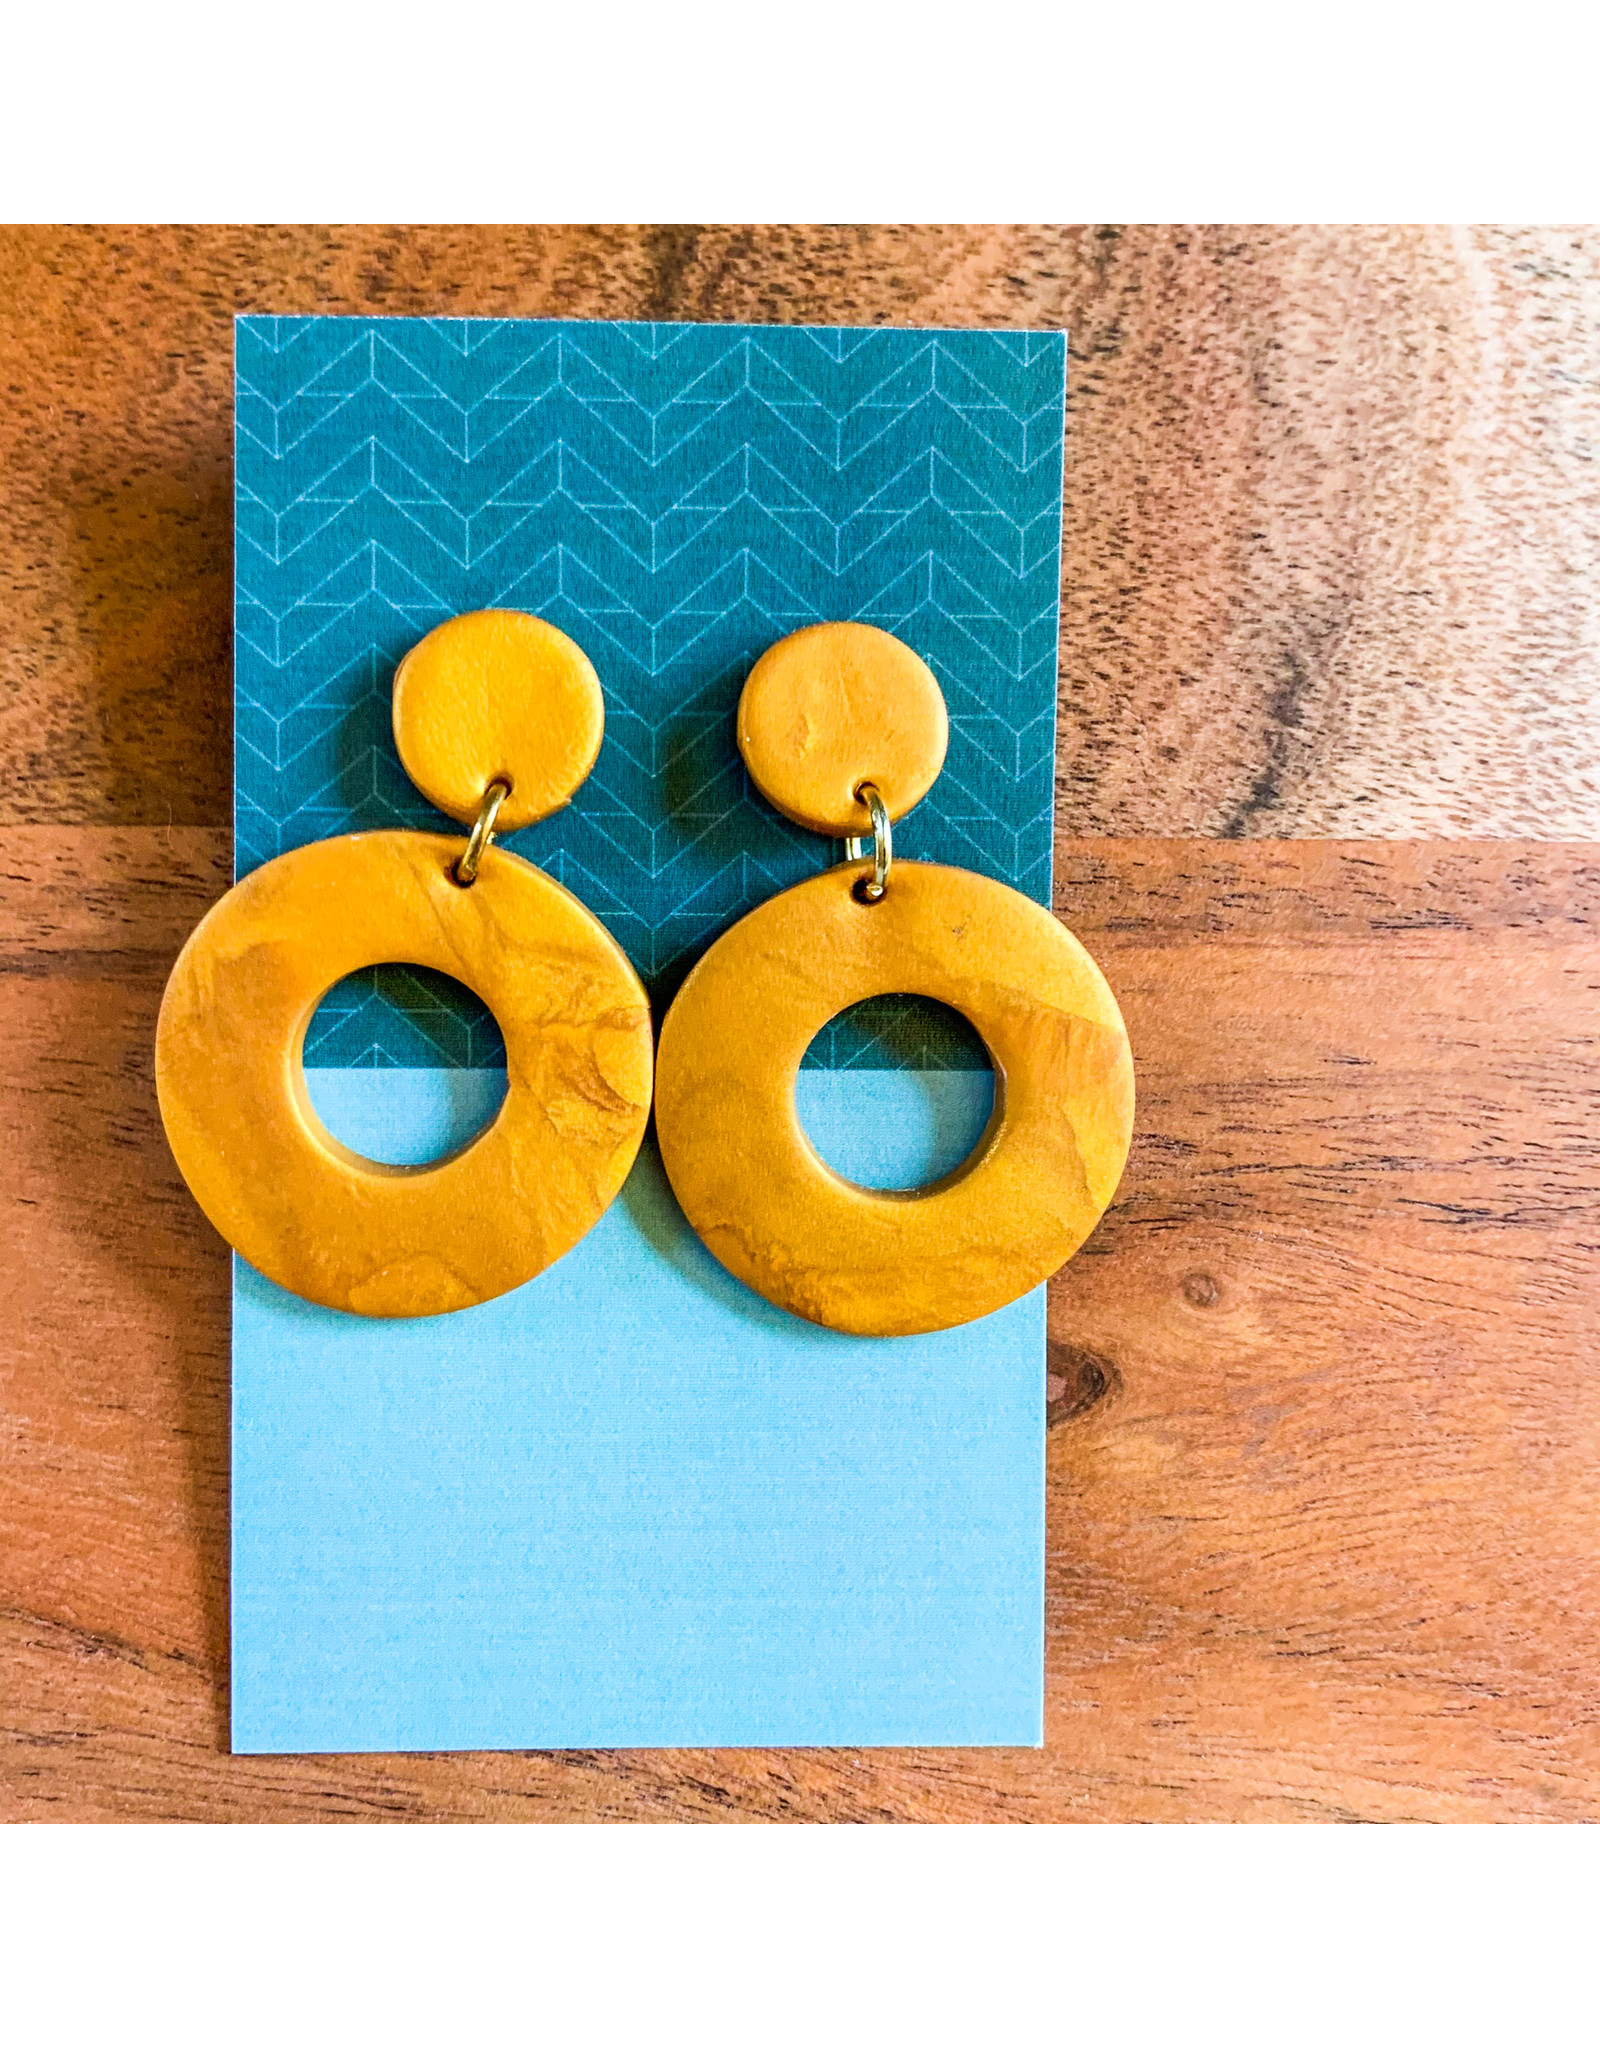 Maria Anholzer-Consignment Gold Circles Consignment